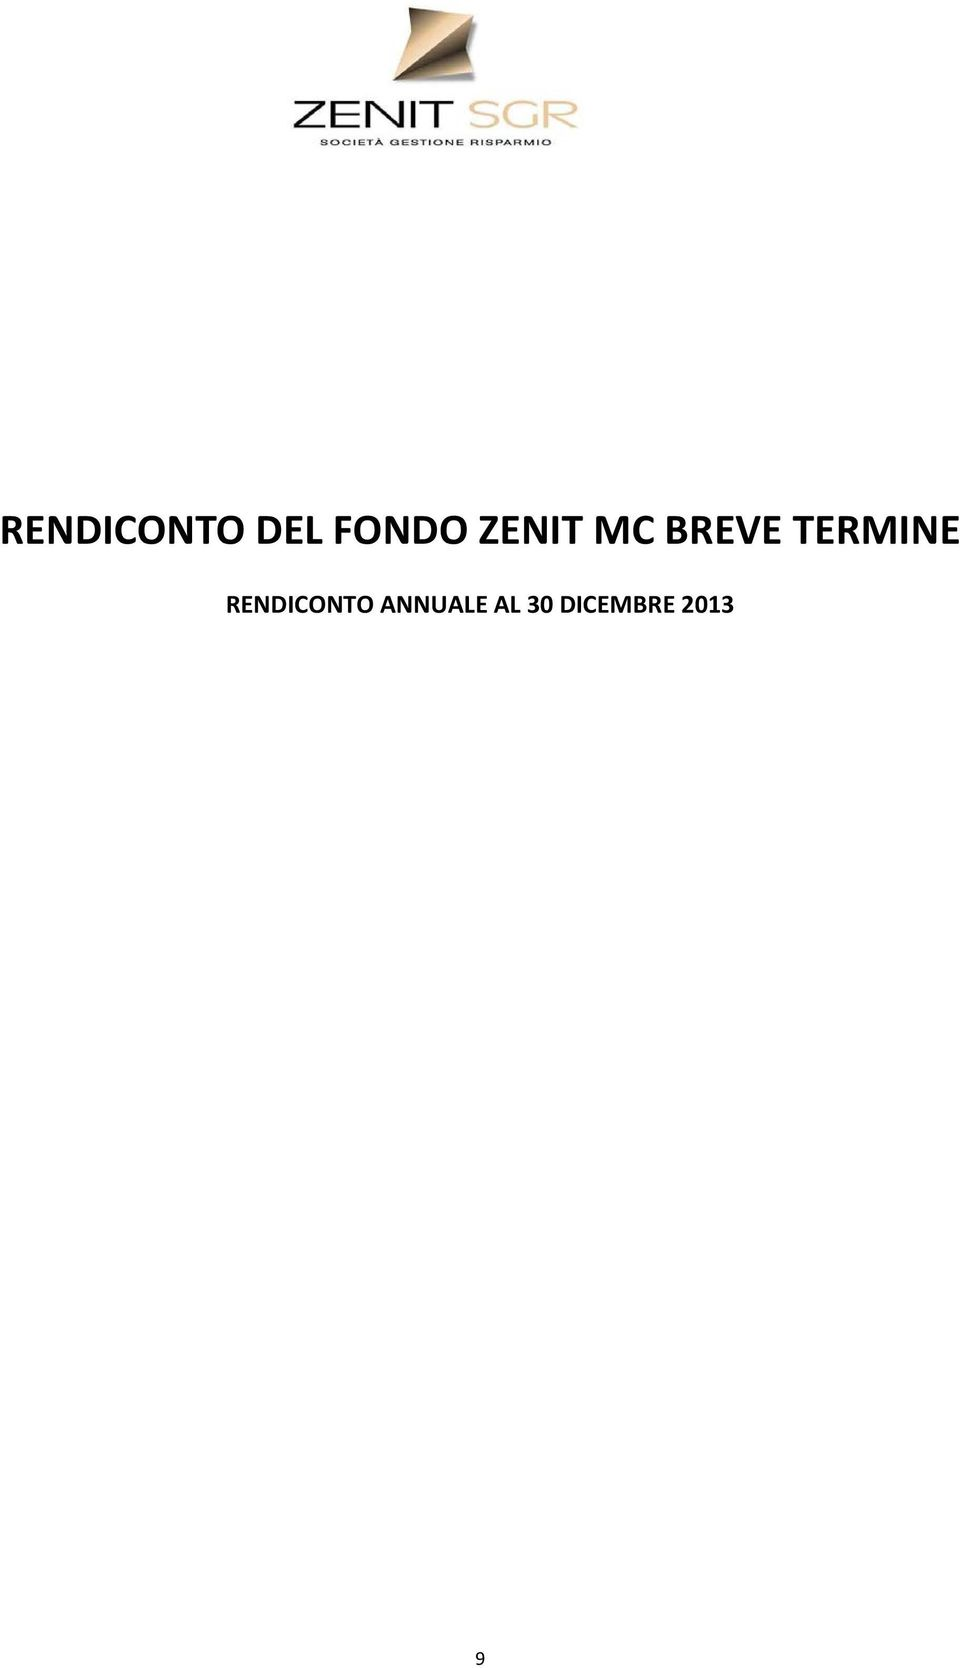 TERMINE RENDICONTO